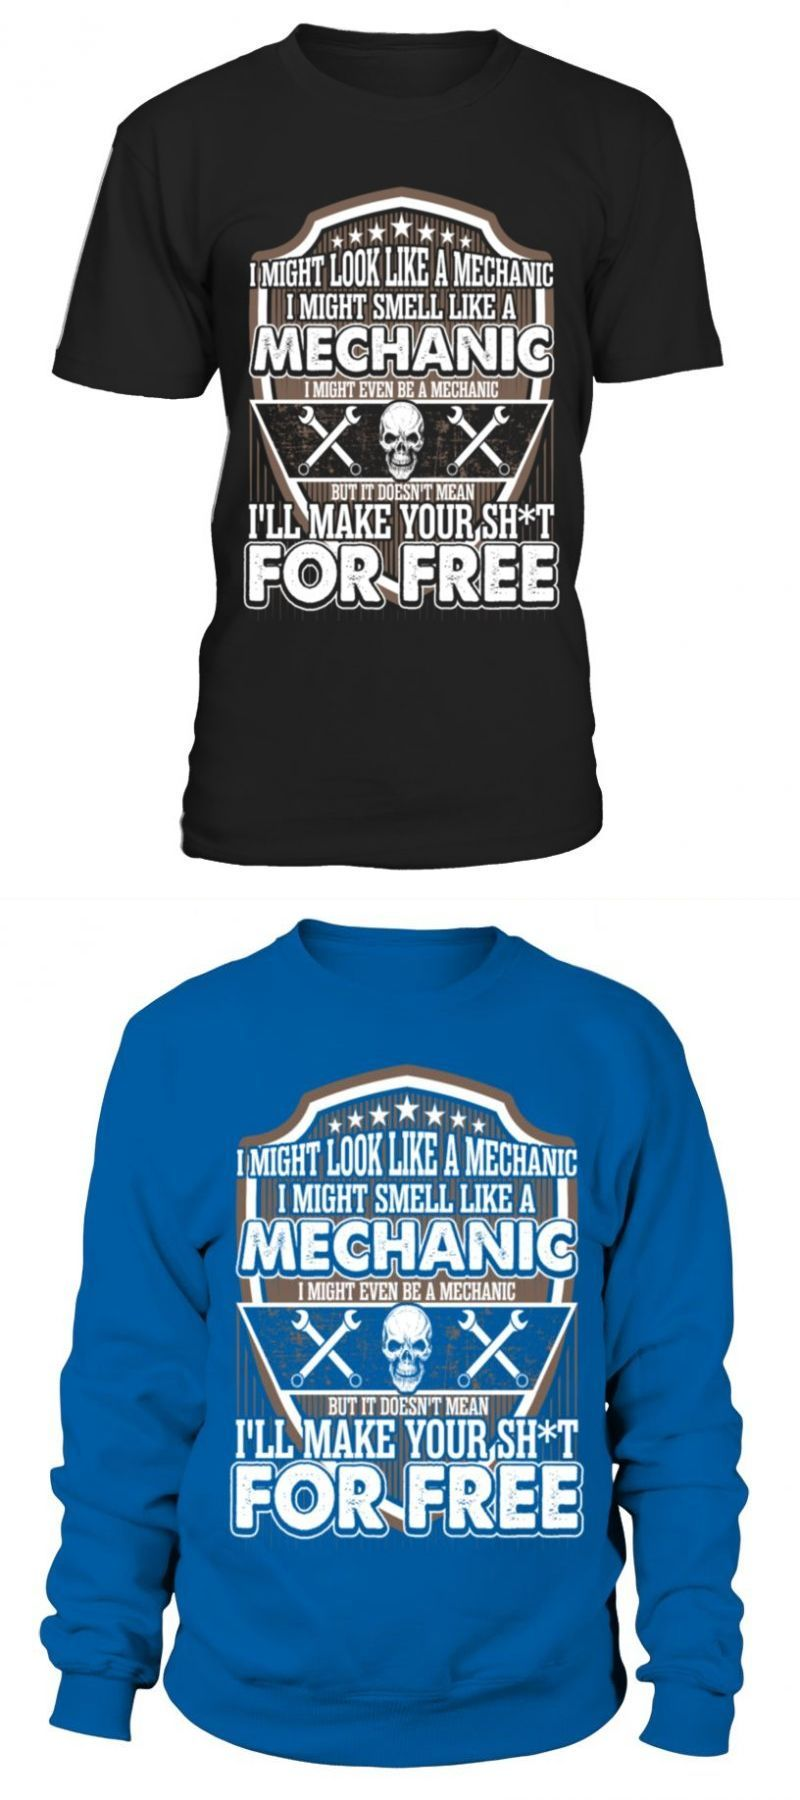 Engineer t shirt i'm good at math mechanic engineer t